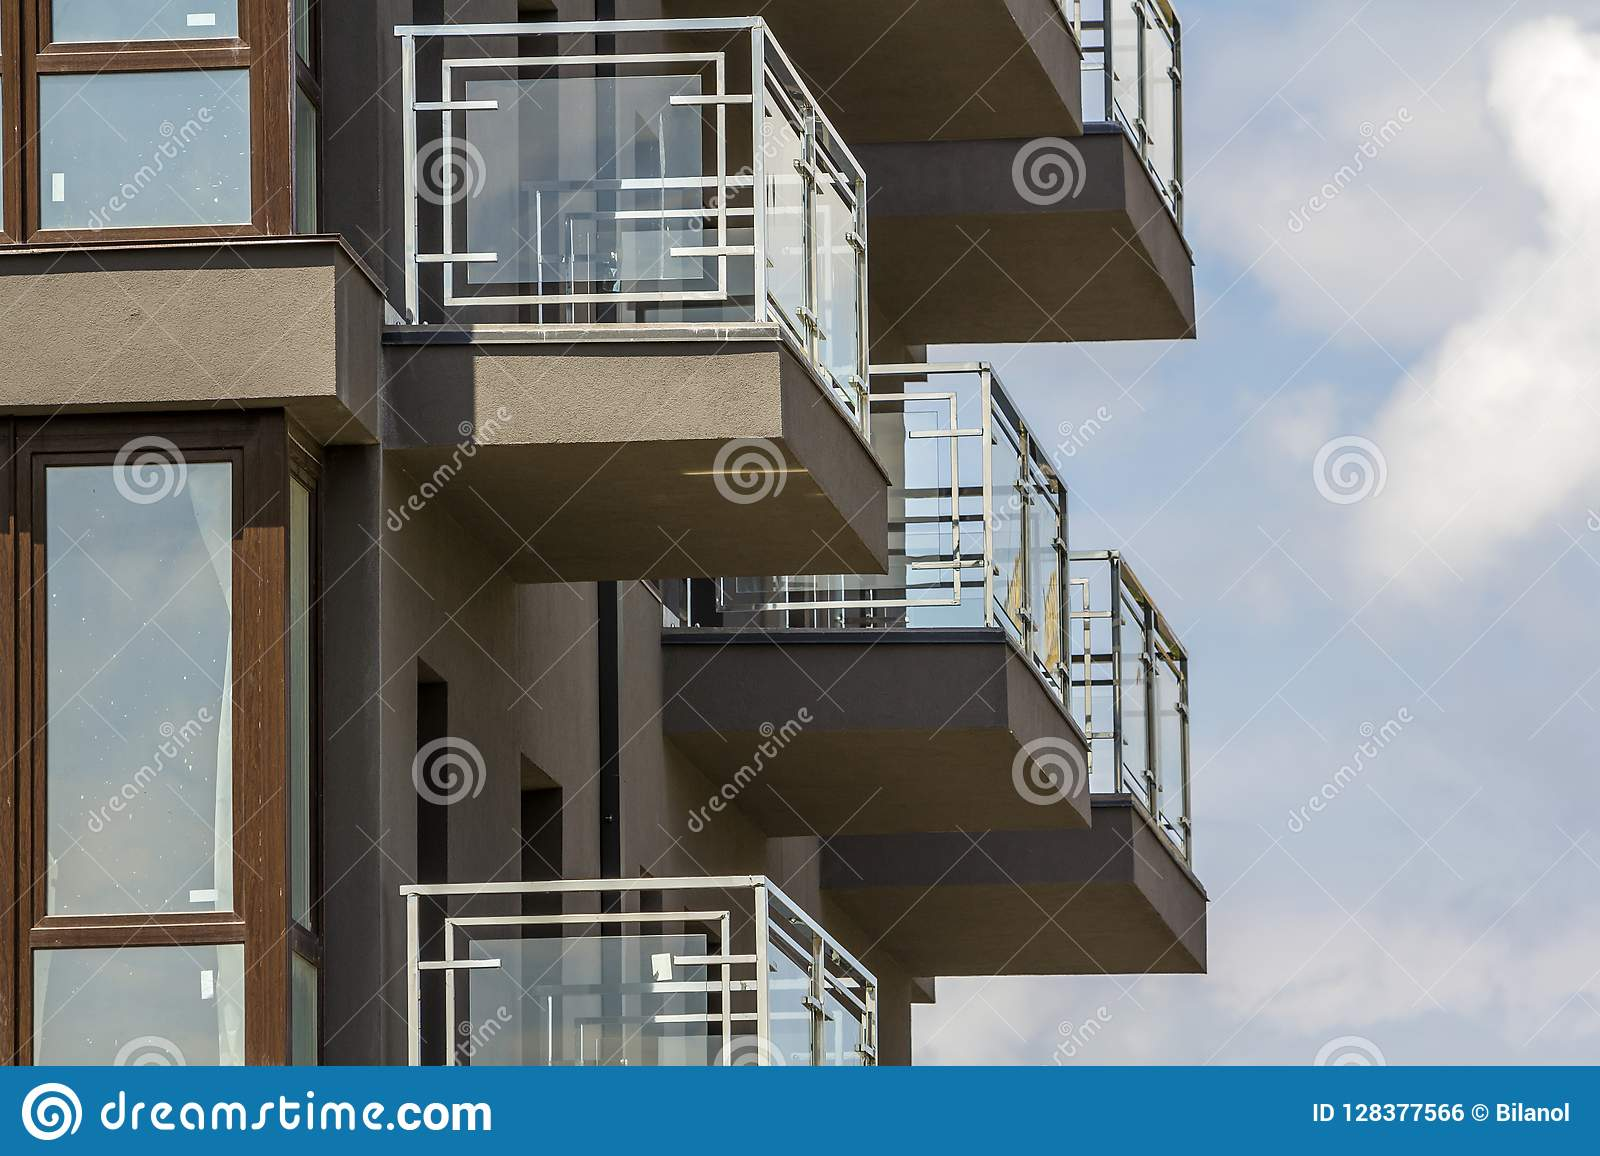 Close-up detail of apartment building wall with balconies and shiny windows on blue sky background.